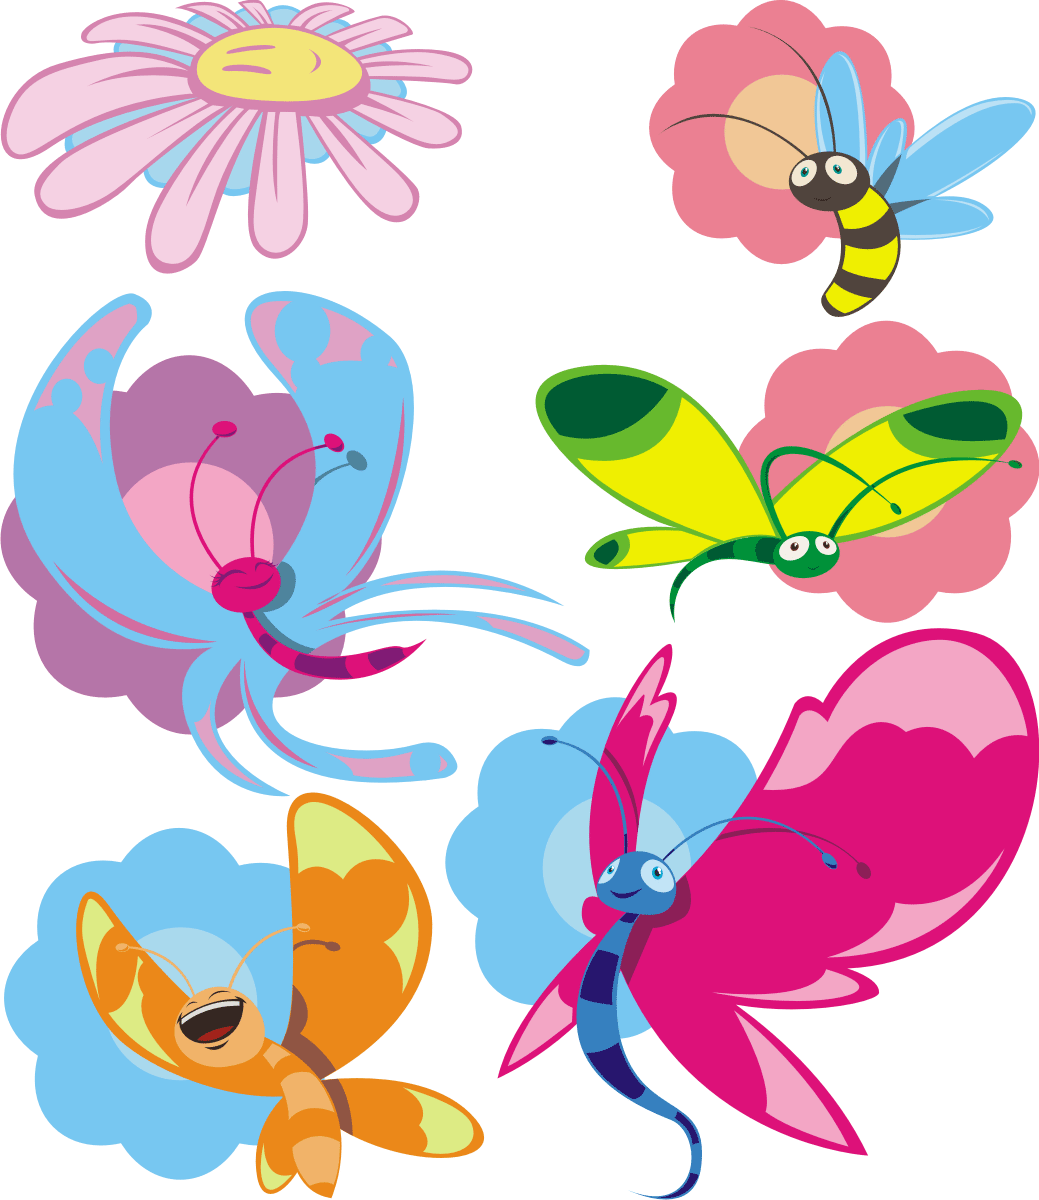 Mariposas de colores infantiles images for Vinilos mariposas